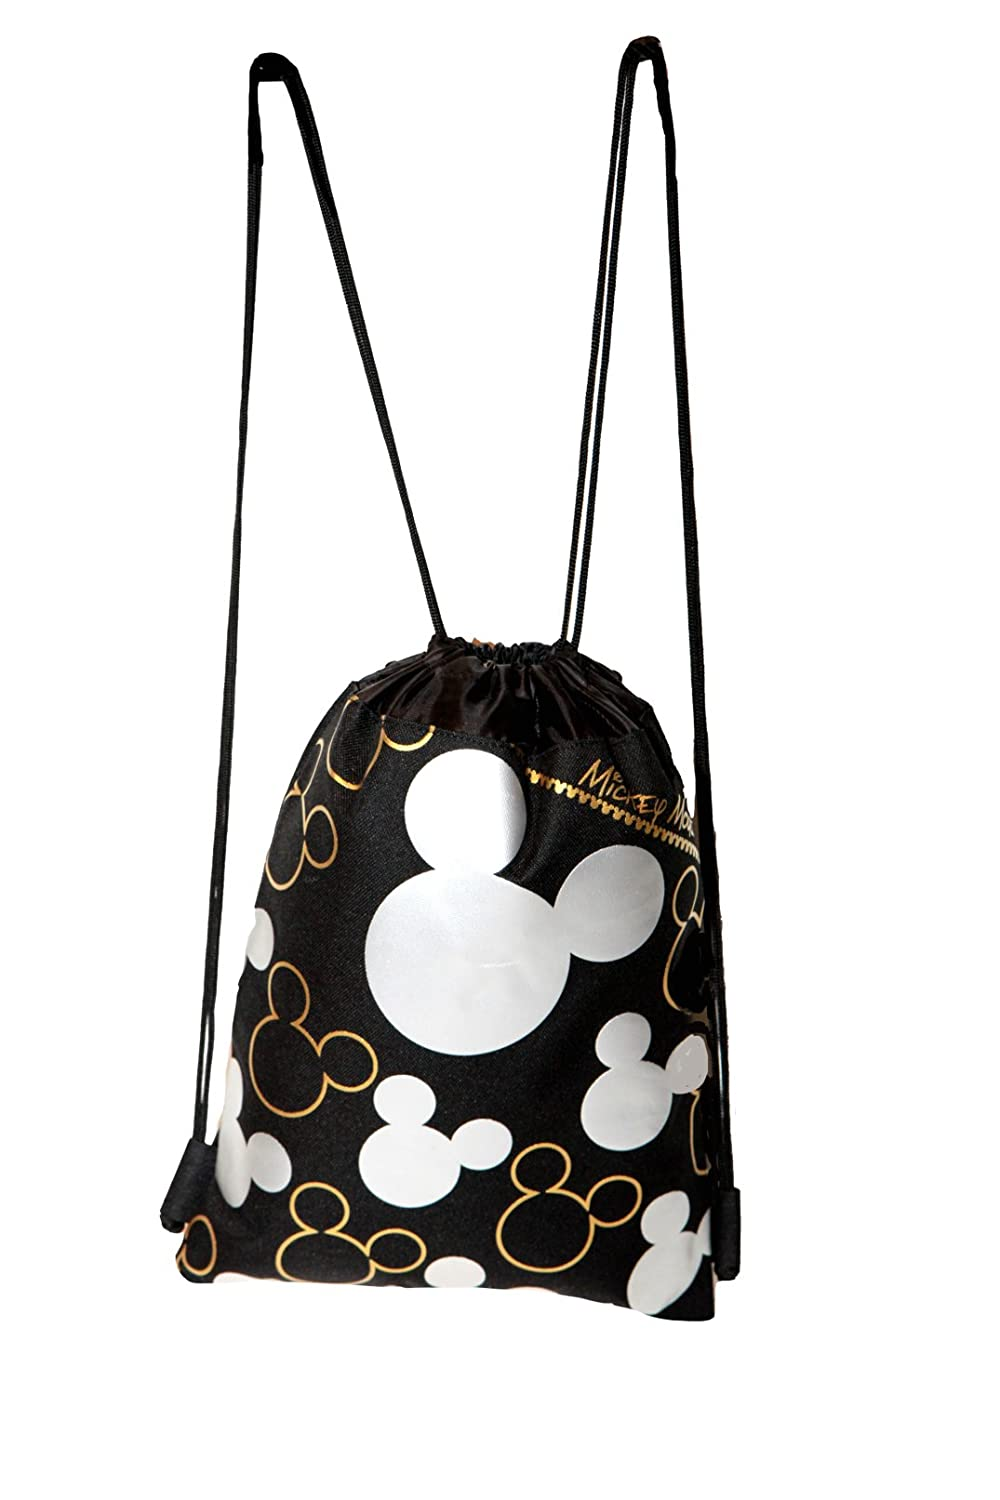 55Star-td Mickey Mouse Silver Drawstring Backpack